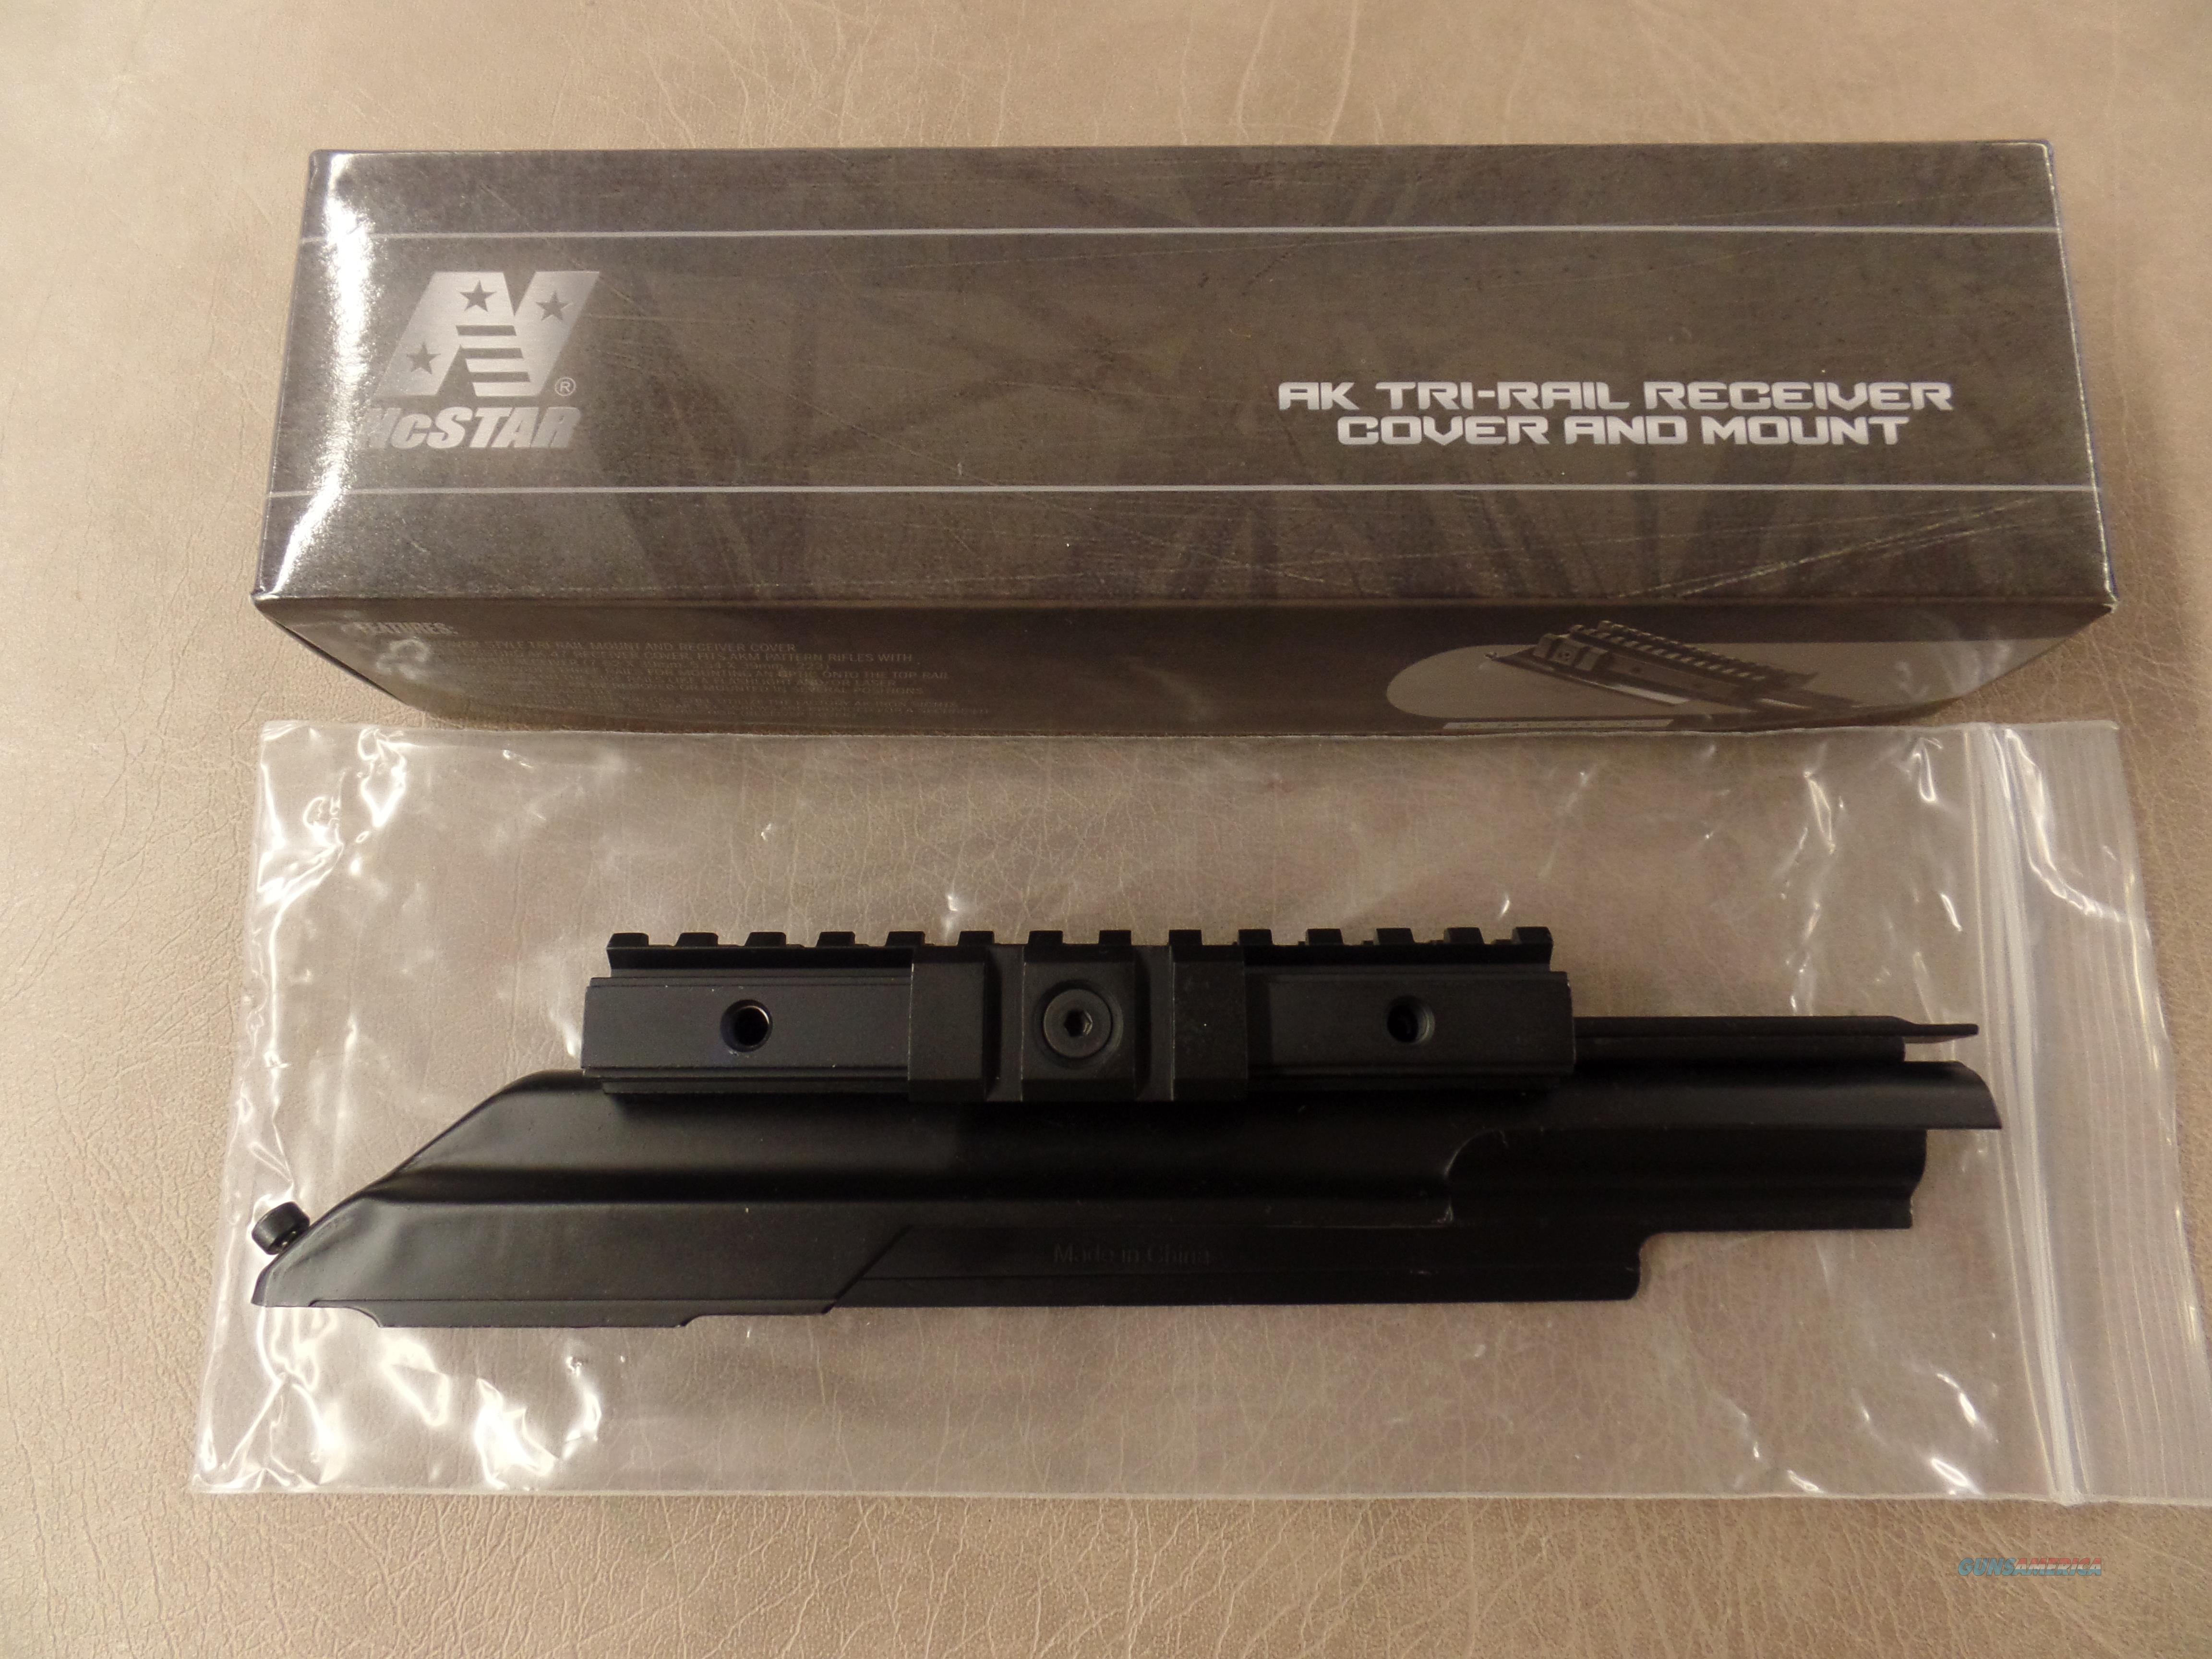 NcStar AK Tri-Rail Receiver Cover And Mount Model # MTAK  Non-Guns > Scopes/Mounts/Rings & Optics > Mounts > Tactical Rail Mounted